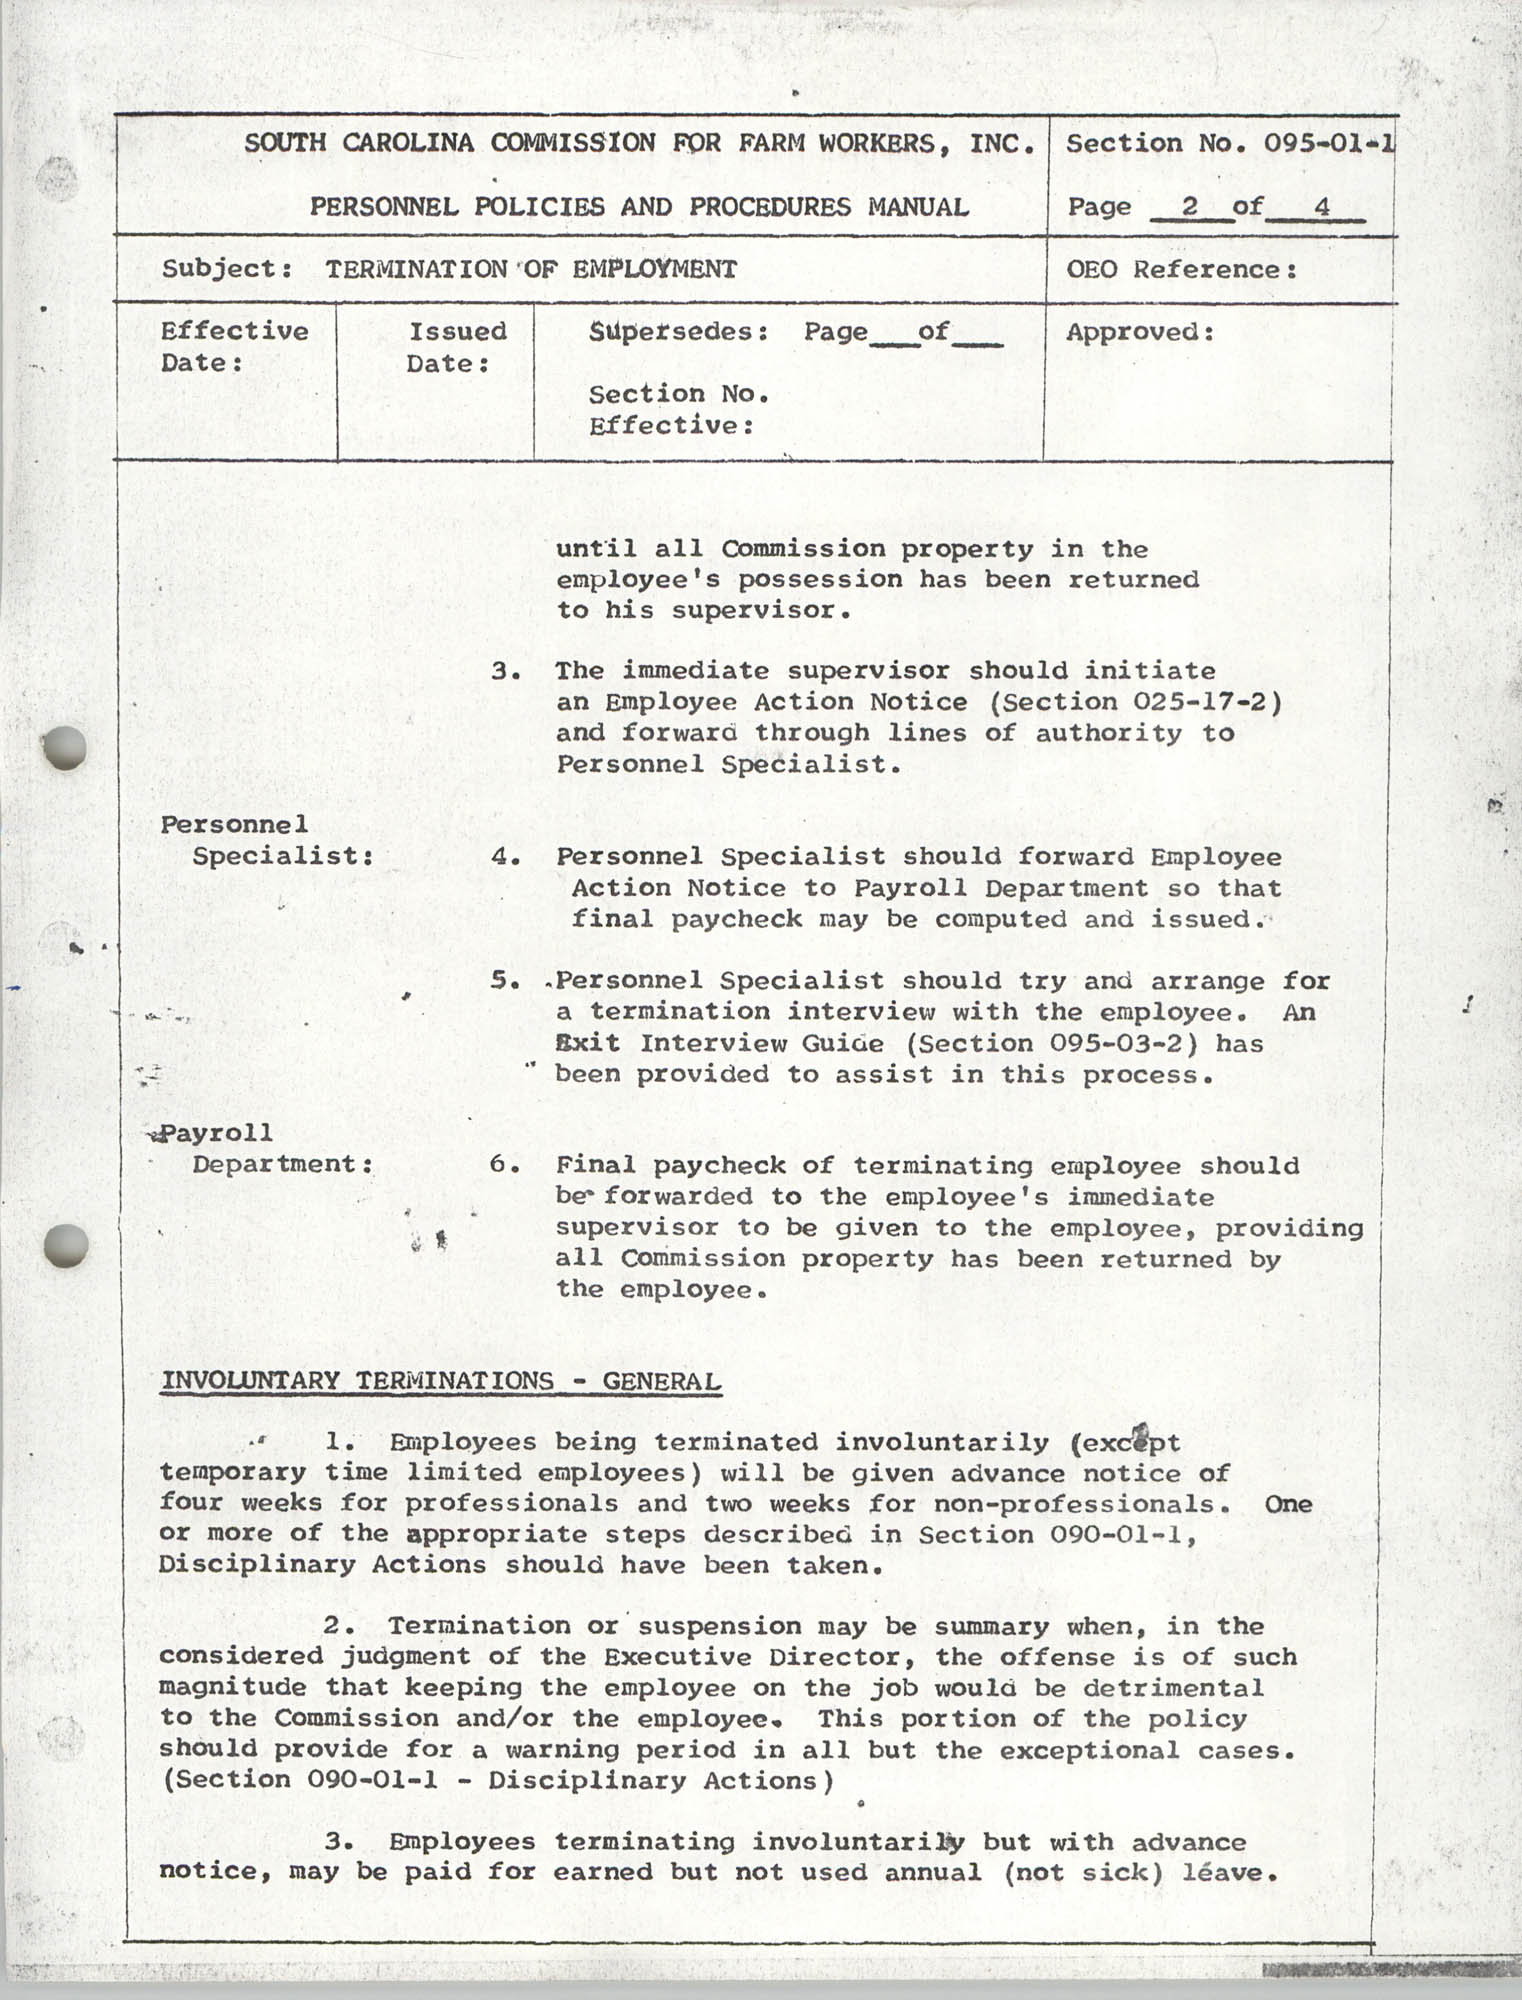 Personnel Policies and Procedures Manual, Section No. 095-01-1, Page 2